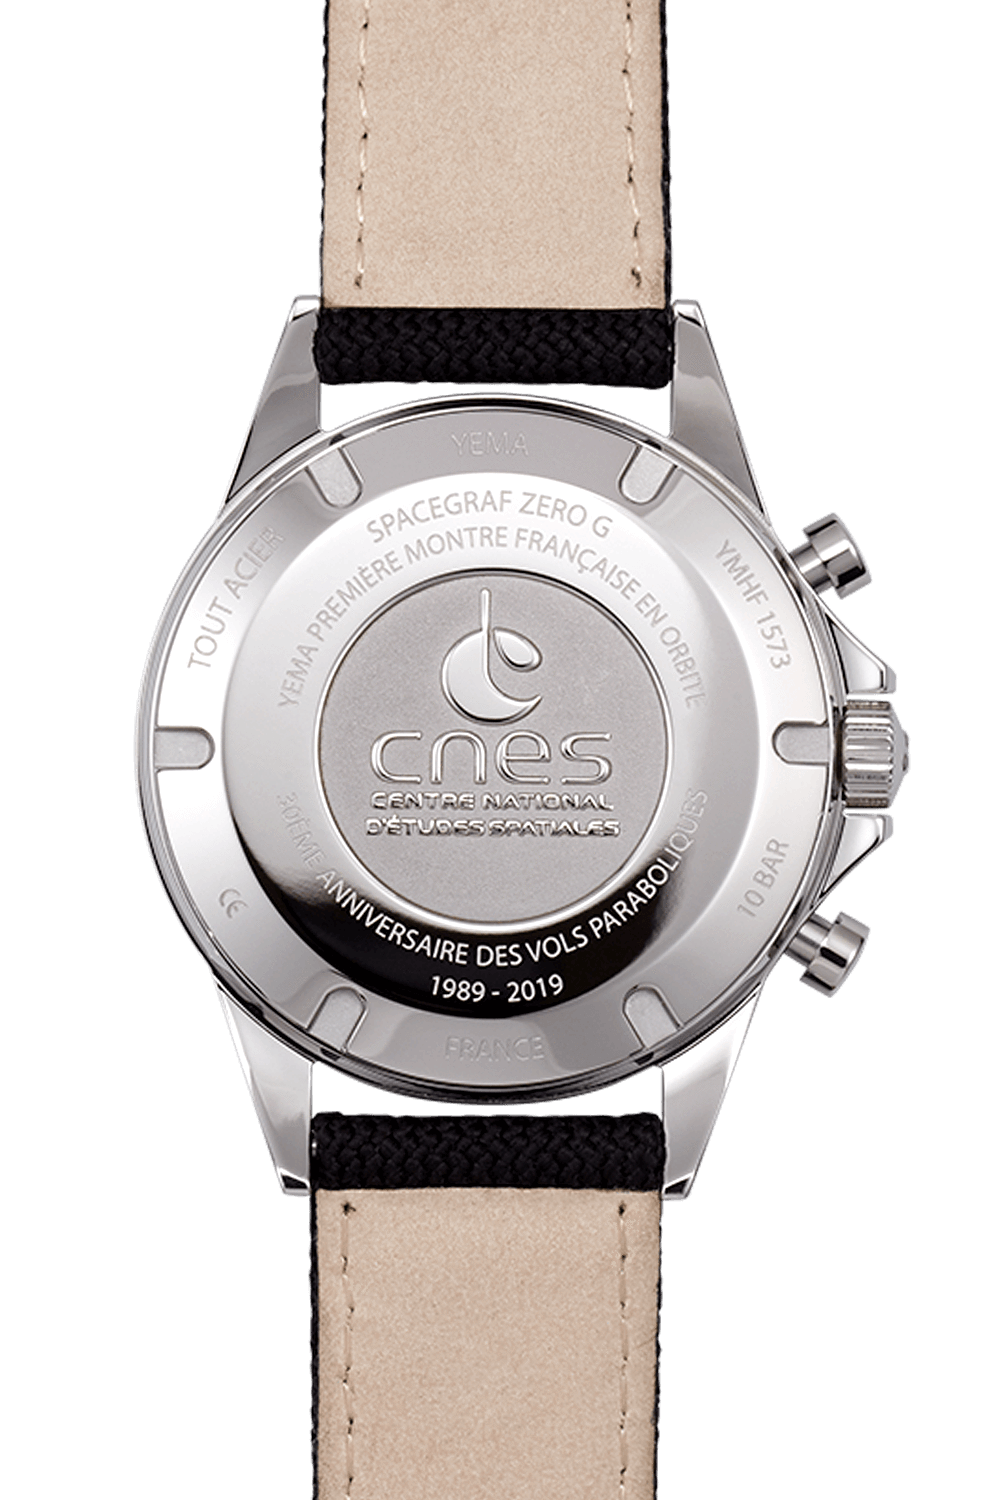 YEMA Spacegraf ZERO-G Steel Black watch, steel caseback engraved with CNES official logo.